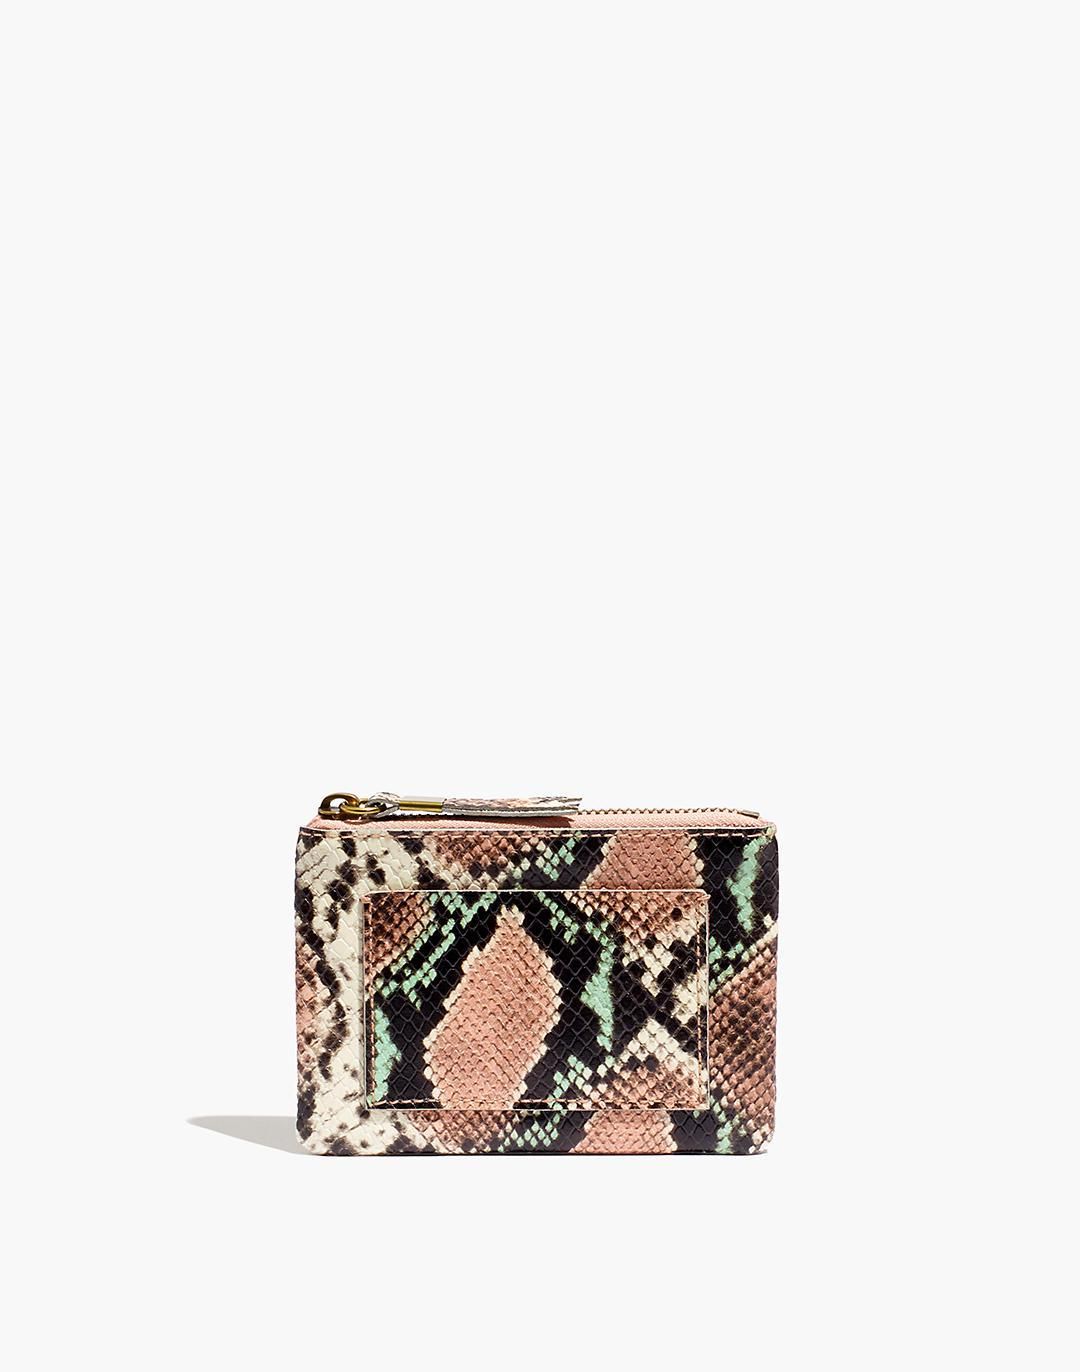 The Leather Pouch Wallet: Snake Embossed Edition